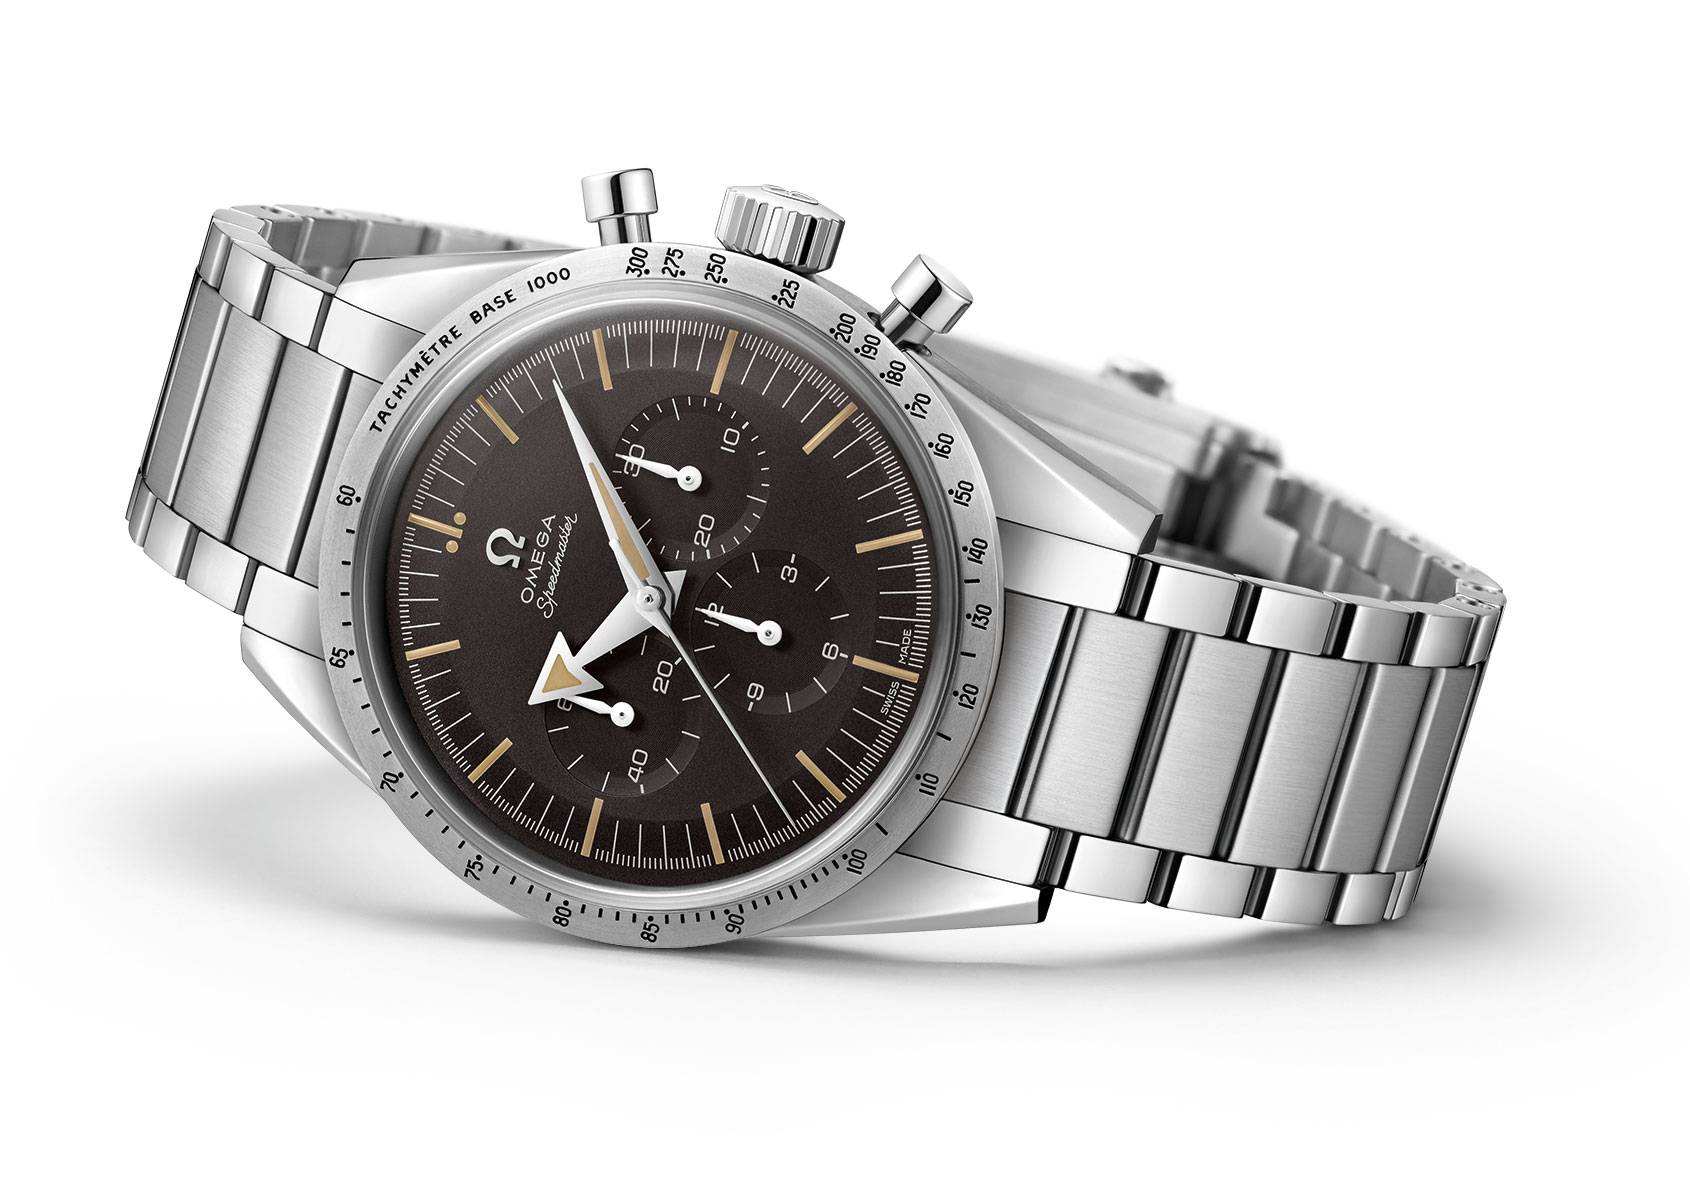 trilogy seamaster baselworld omega railmaster watches price reissue speedmaster